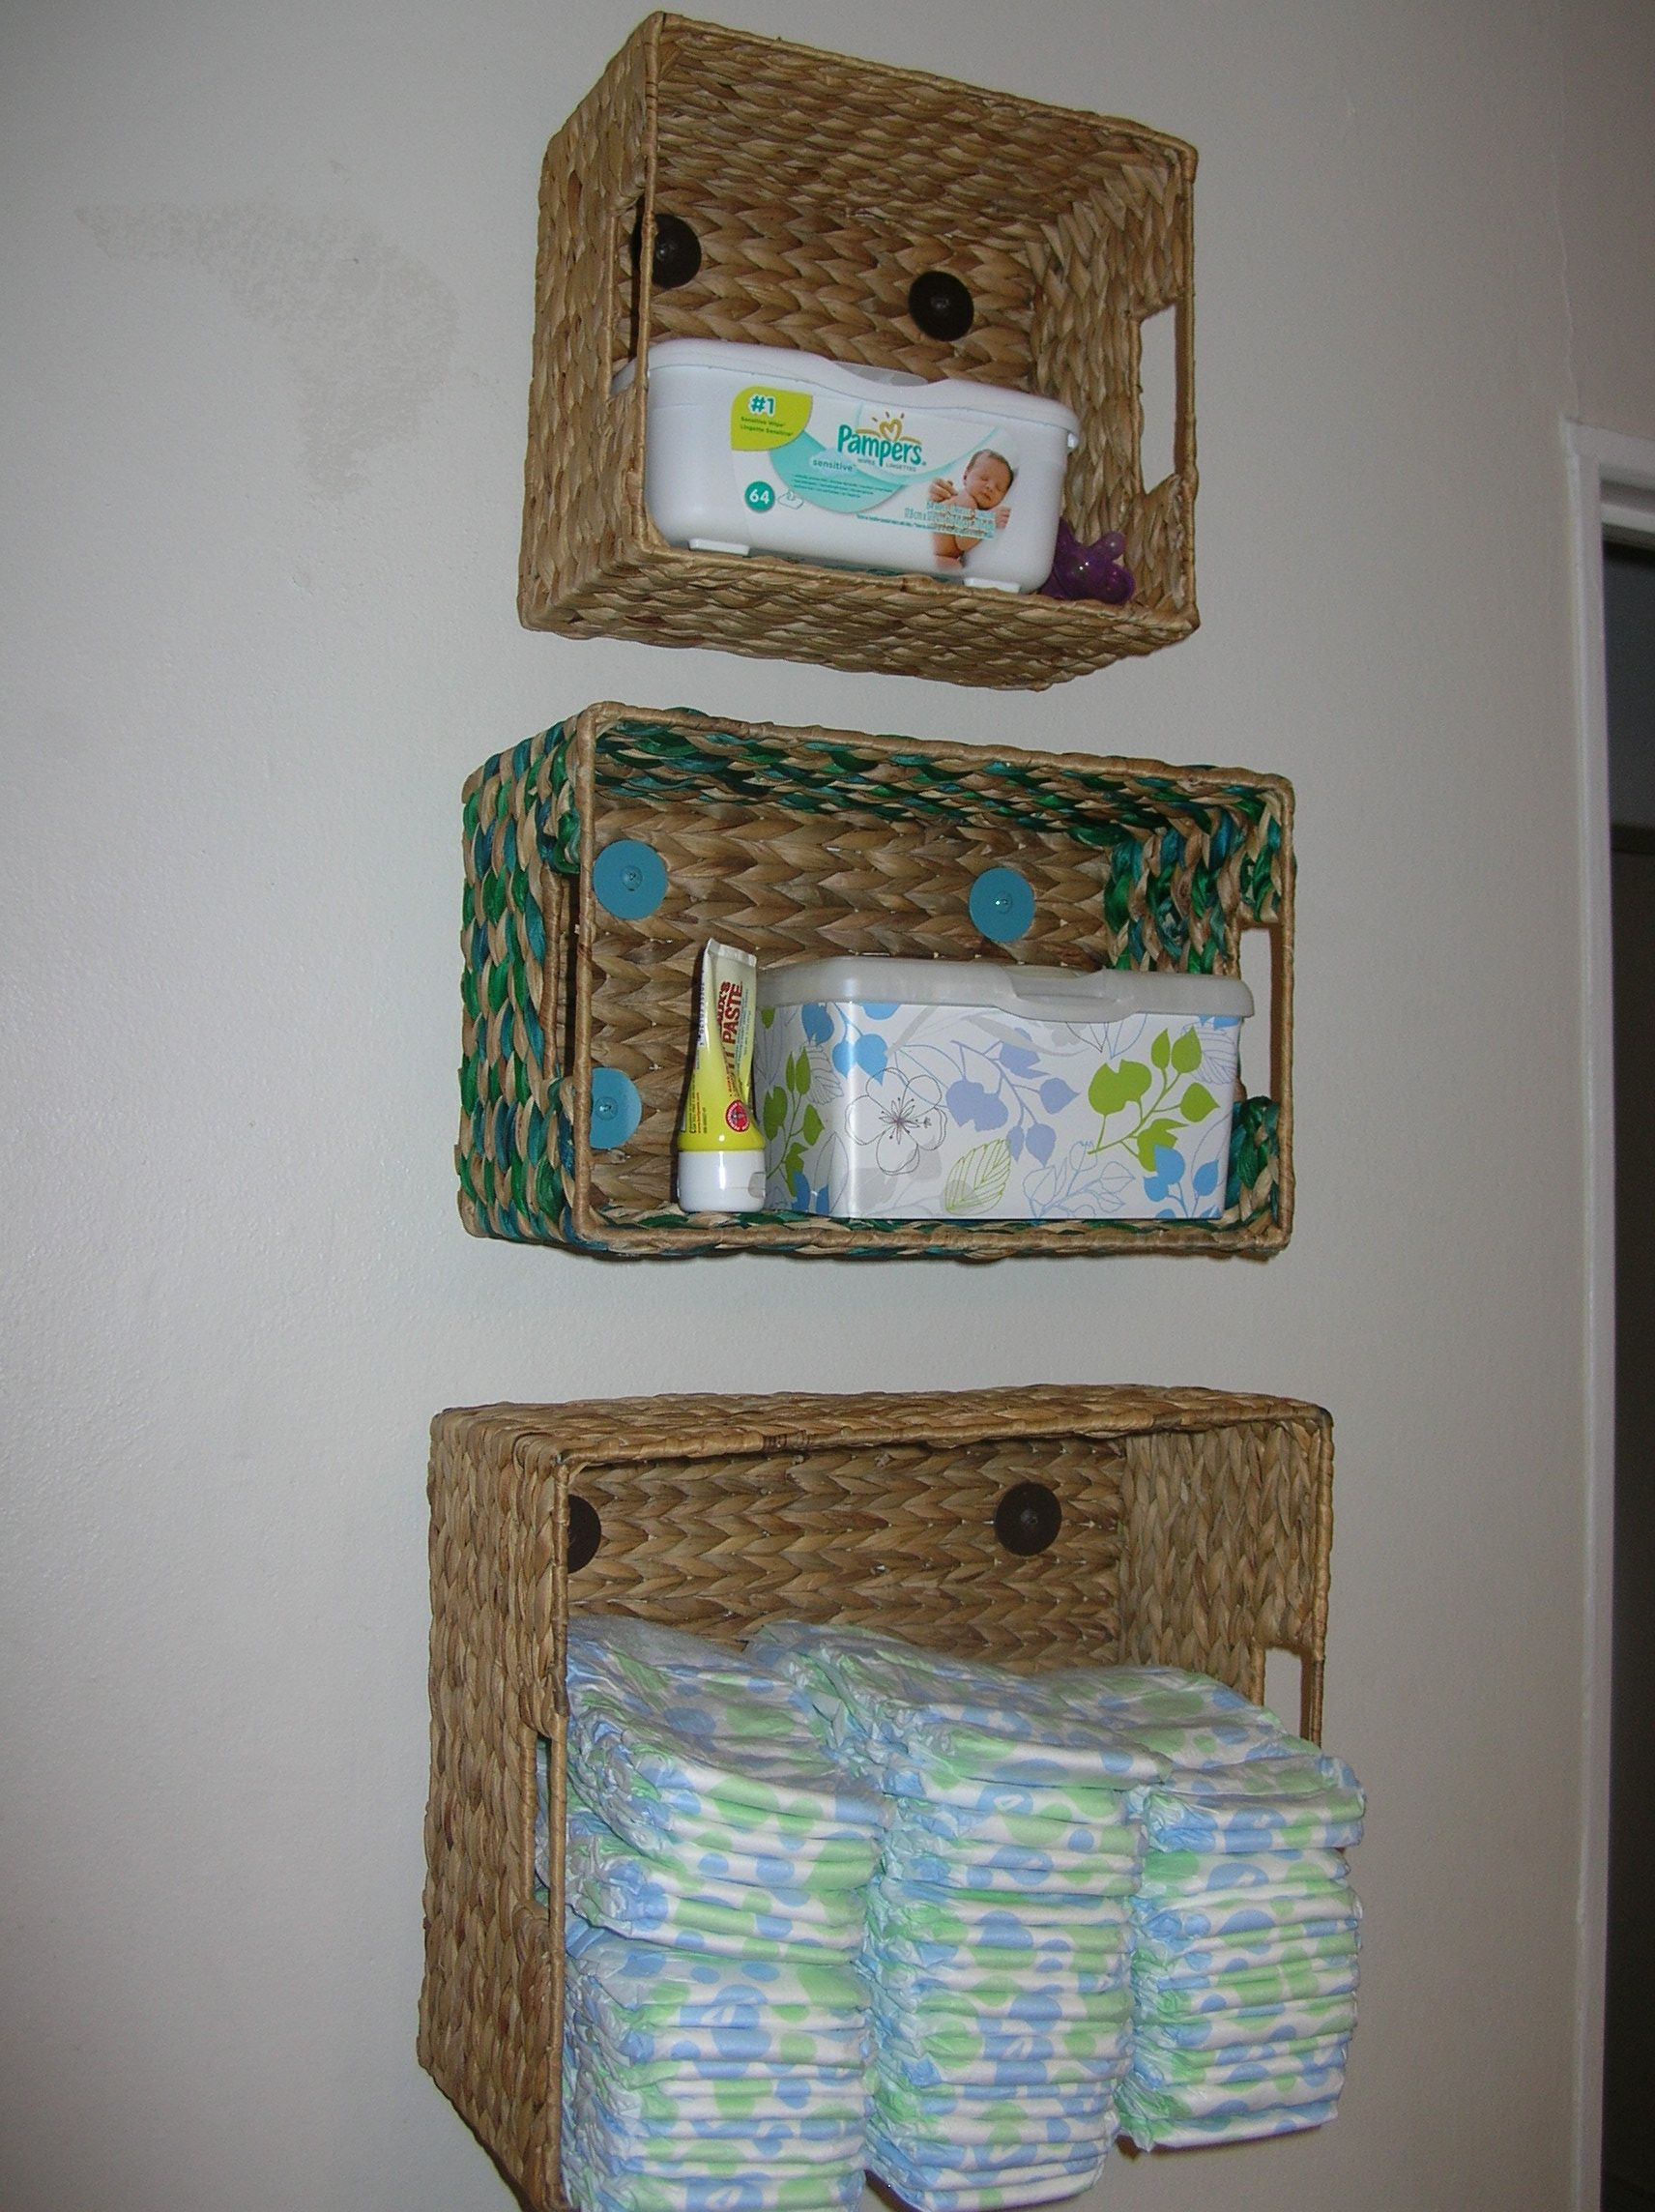 Diaper Changing Station Storage On The Wall Too High For